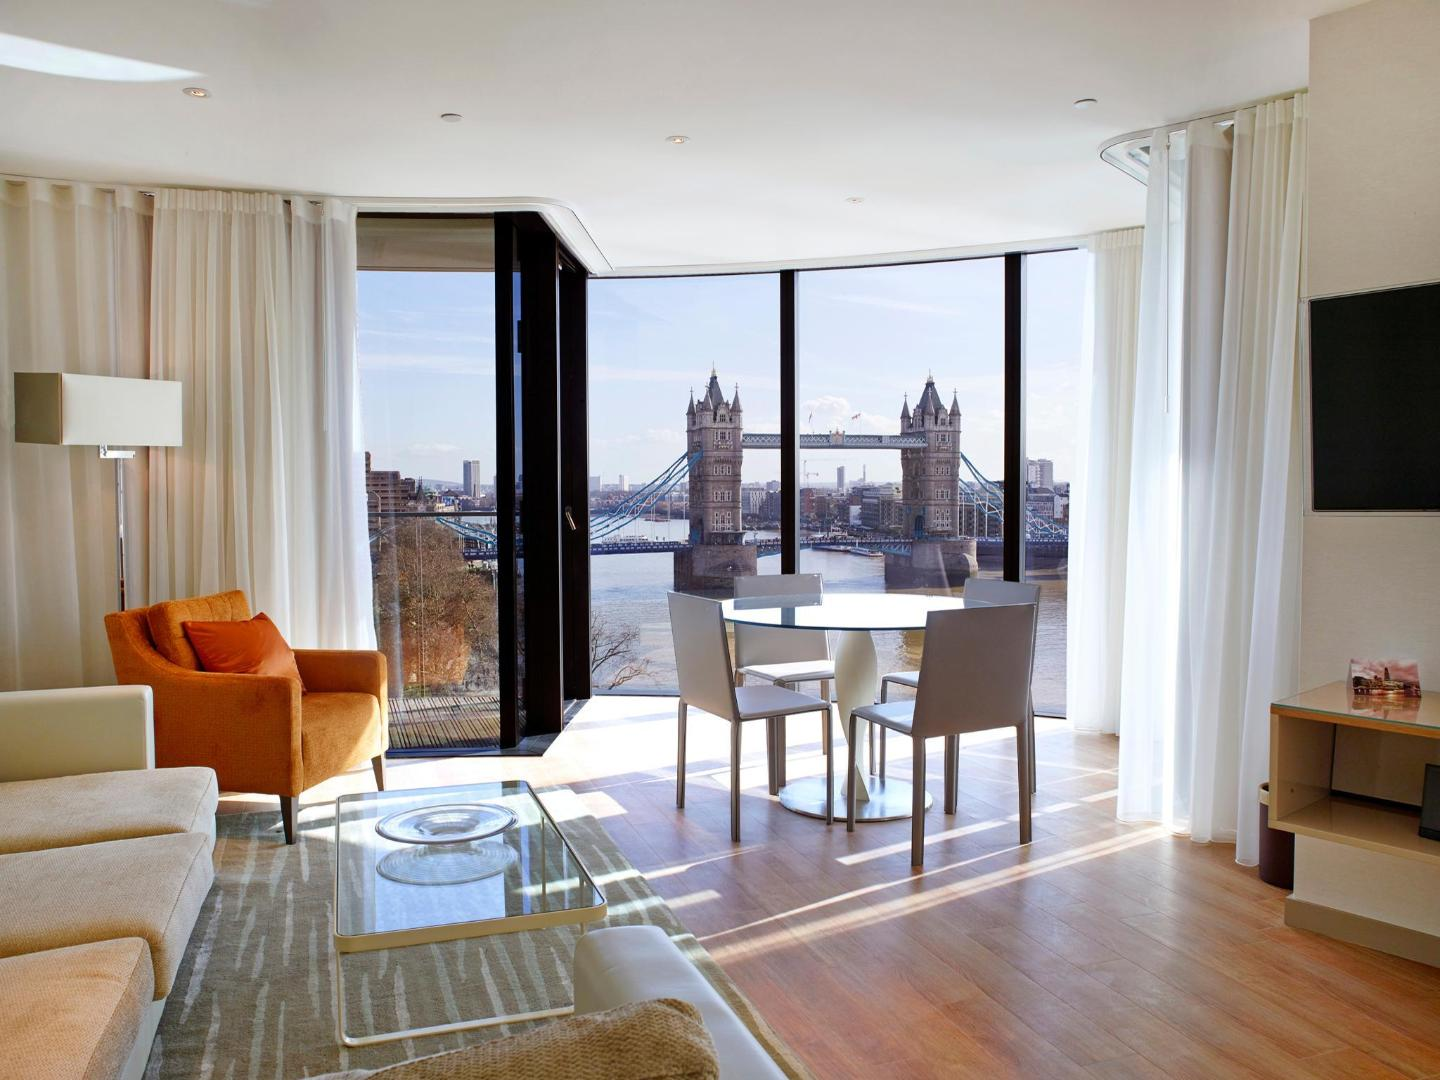 The 10 best apartments in London, UK   Booking.com